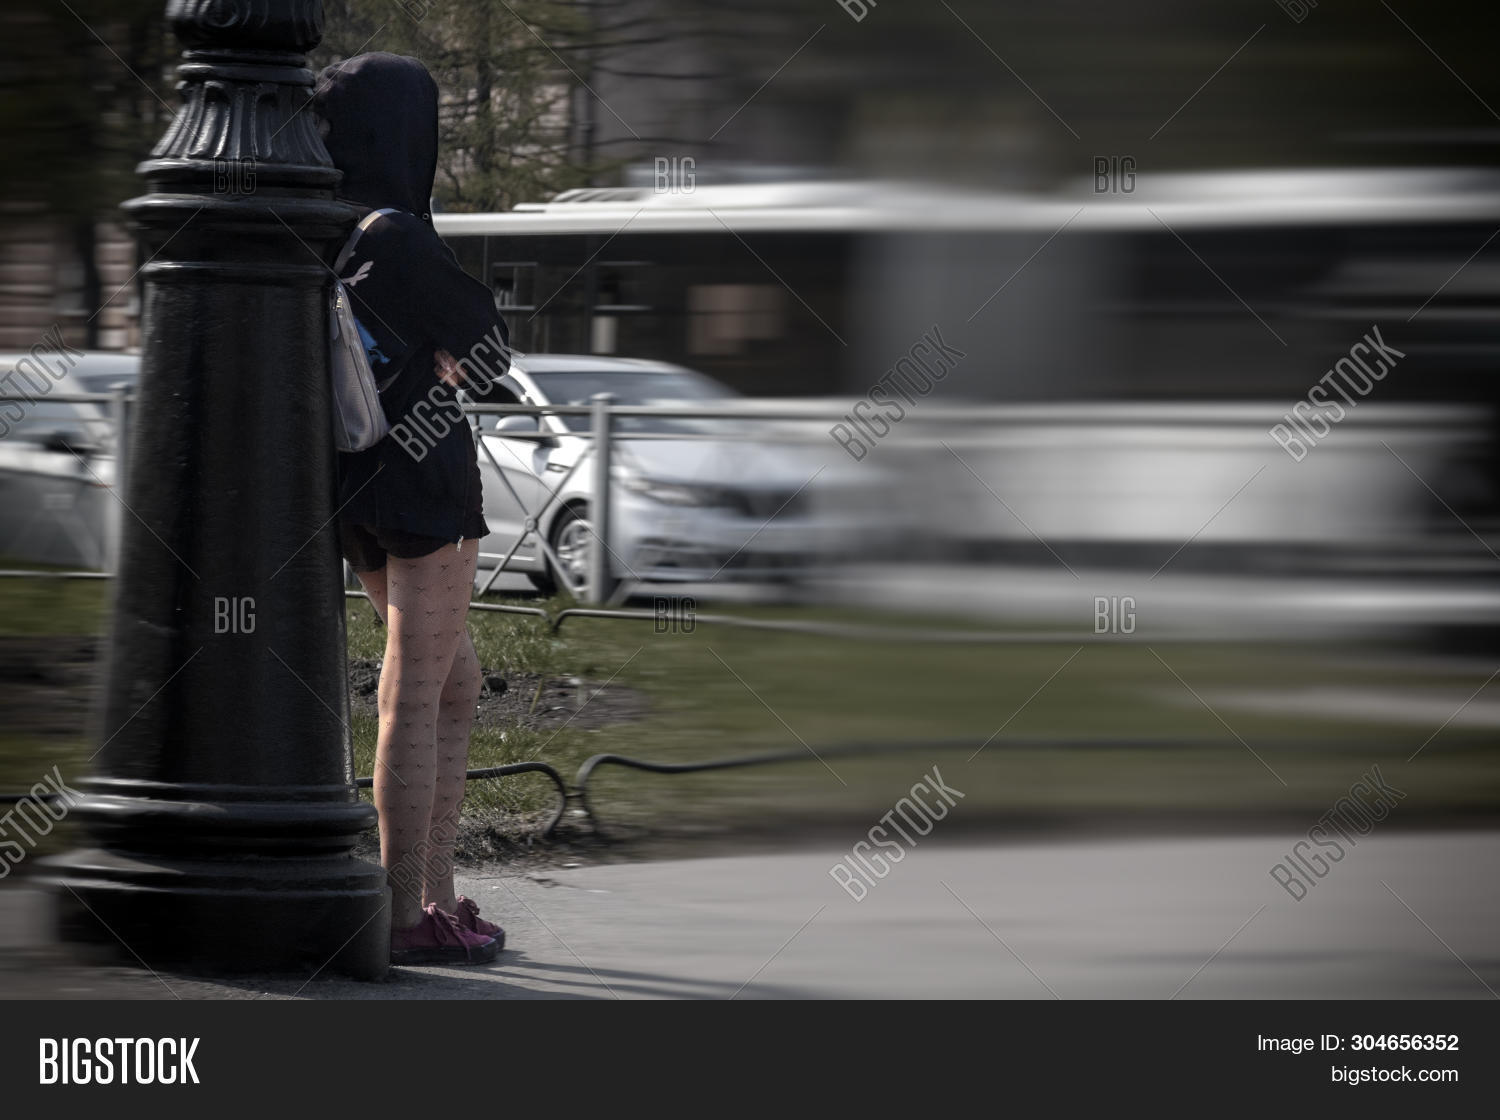 Girl Prostitute Costs Image & Photo (Free Trial) | Bigstock